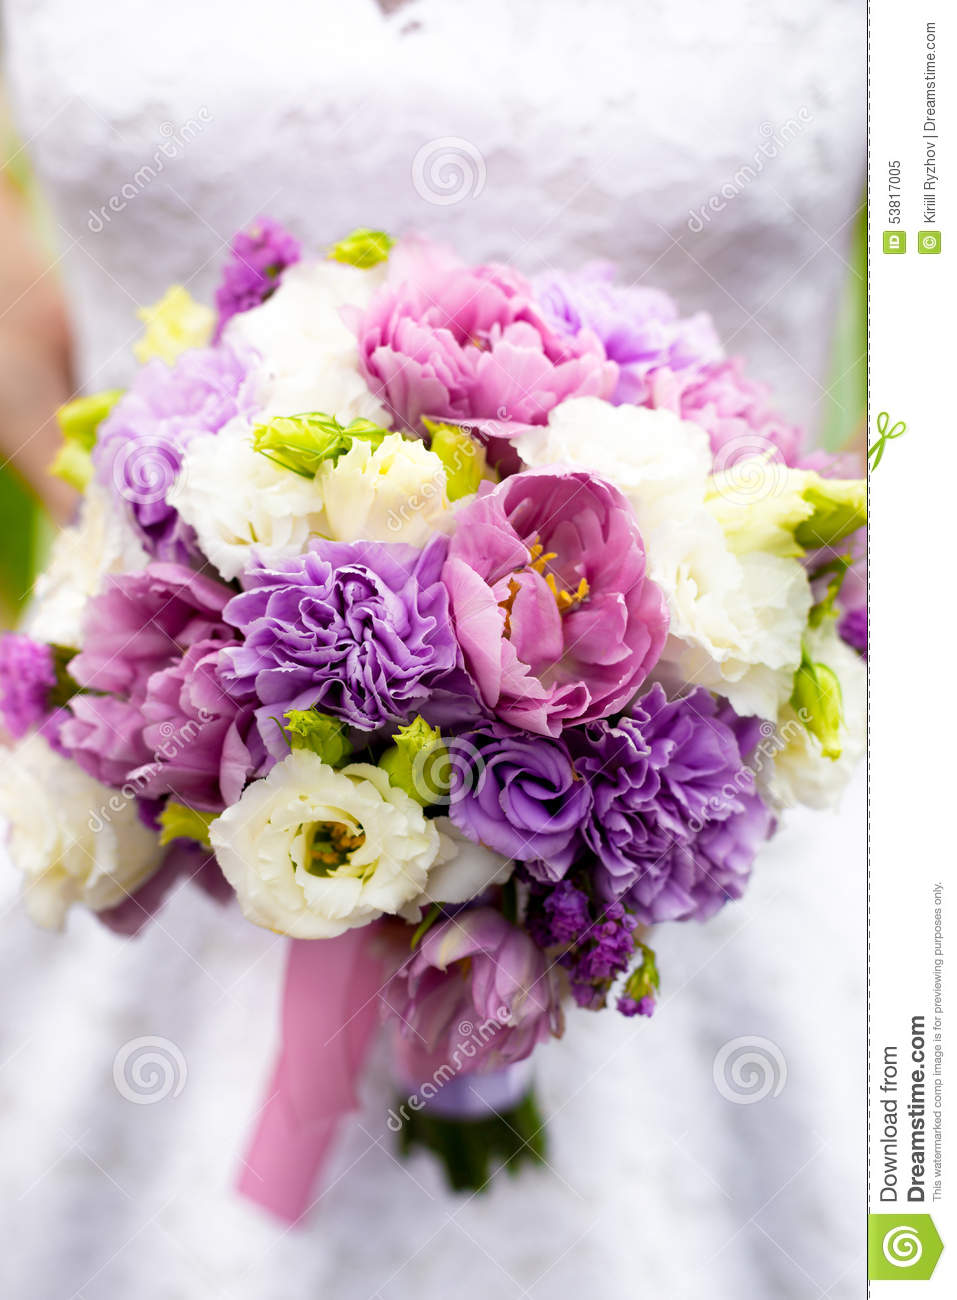 Great pink and purple flower bouquets images wedding and flowers purple pink and white wedding flowers purple pink white real touch izmirmasajfo Choice Image